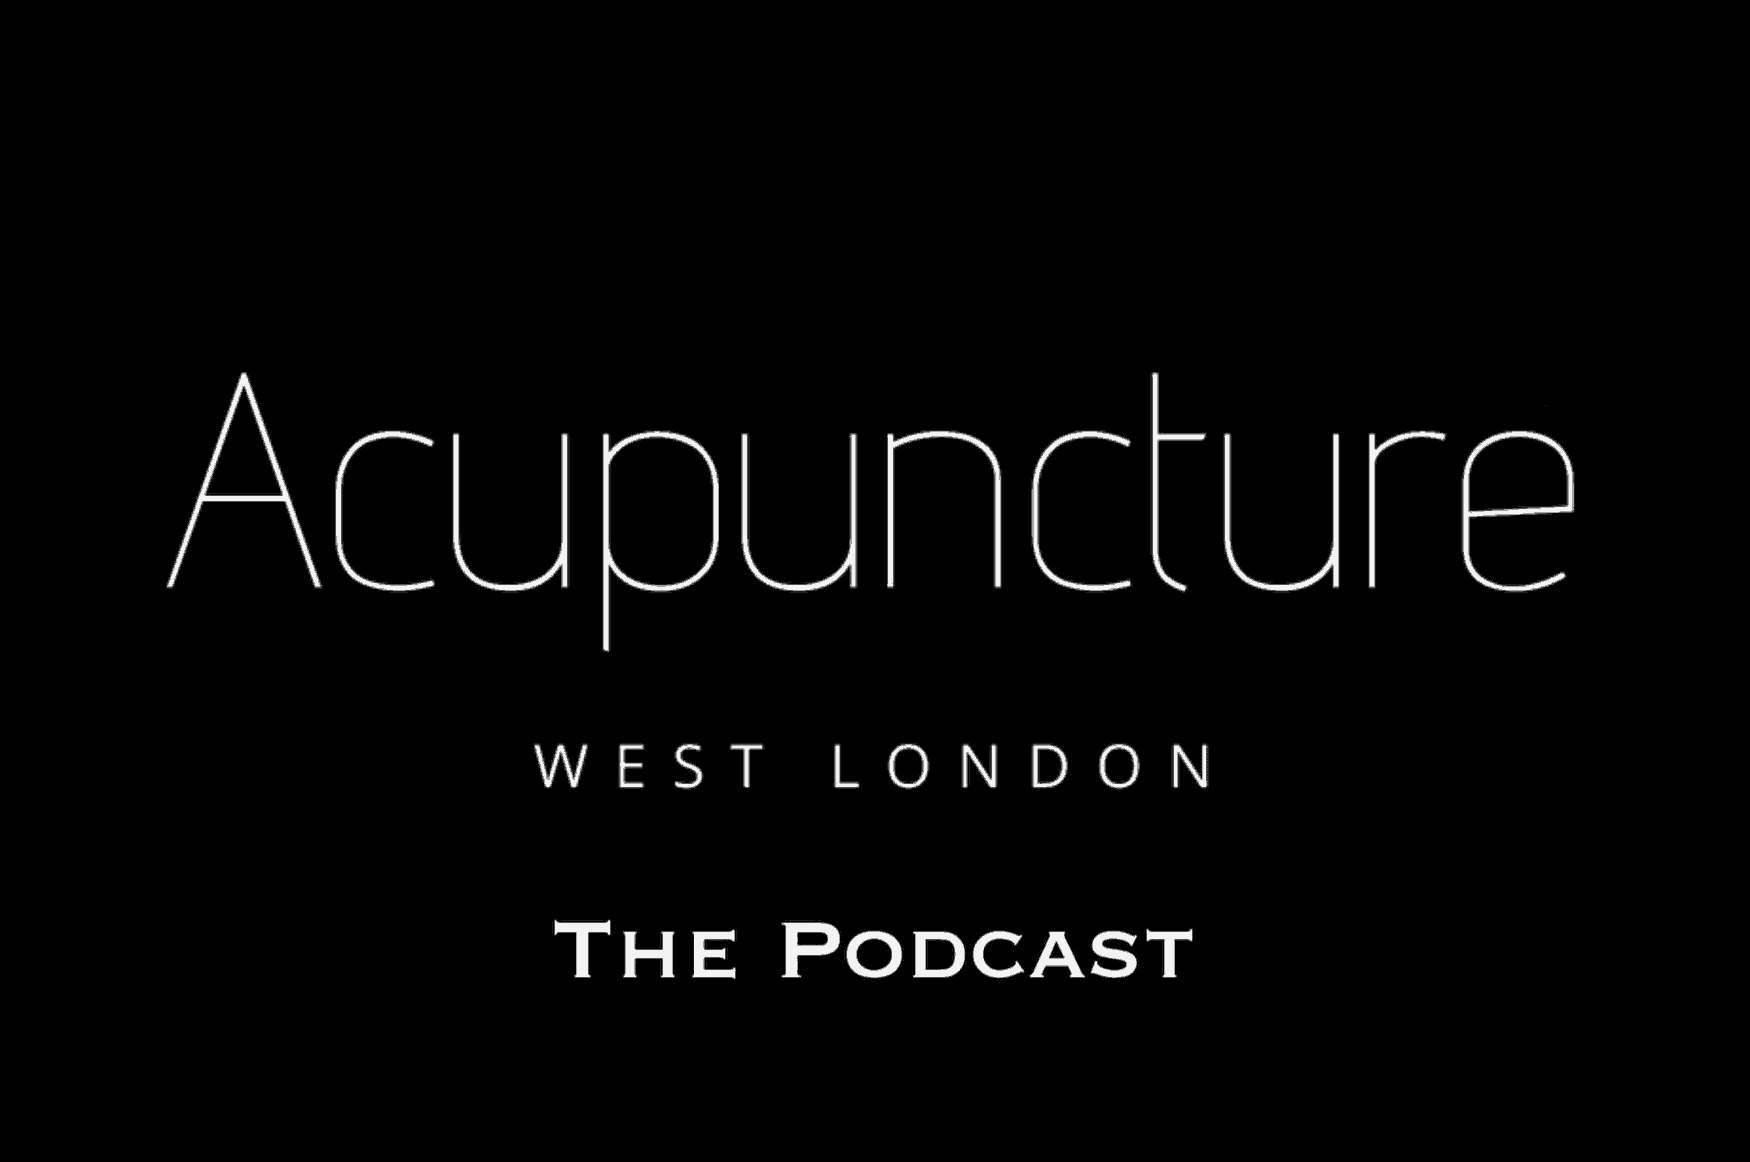 Acupuncture West London – The Podcast